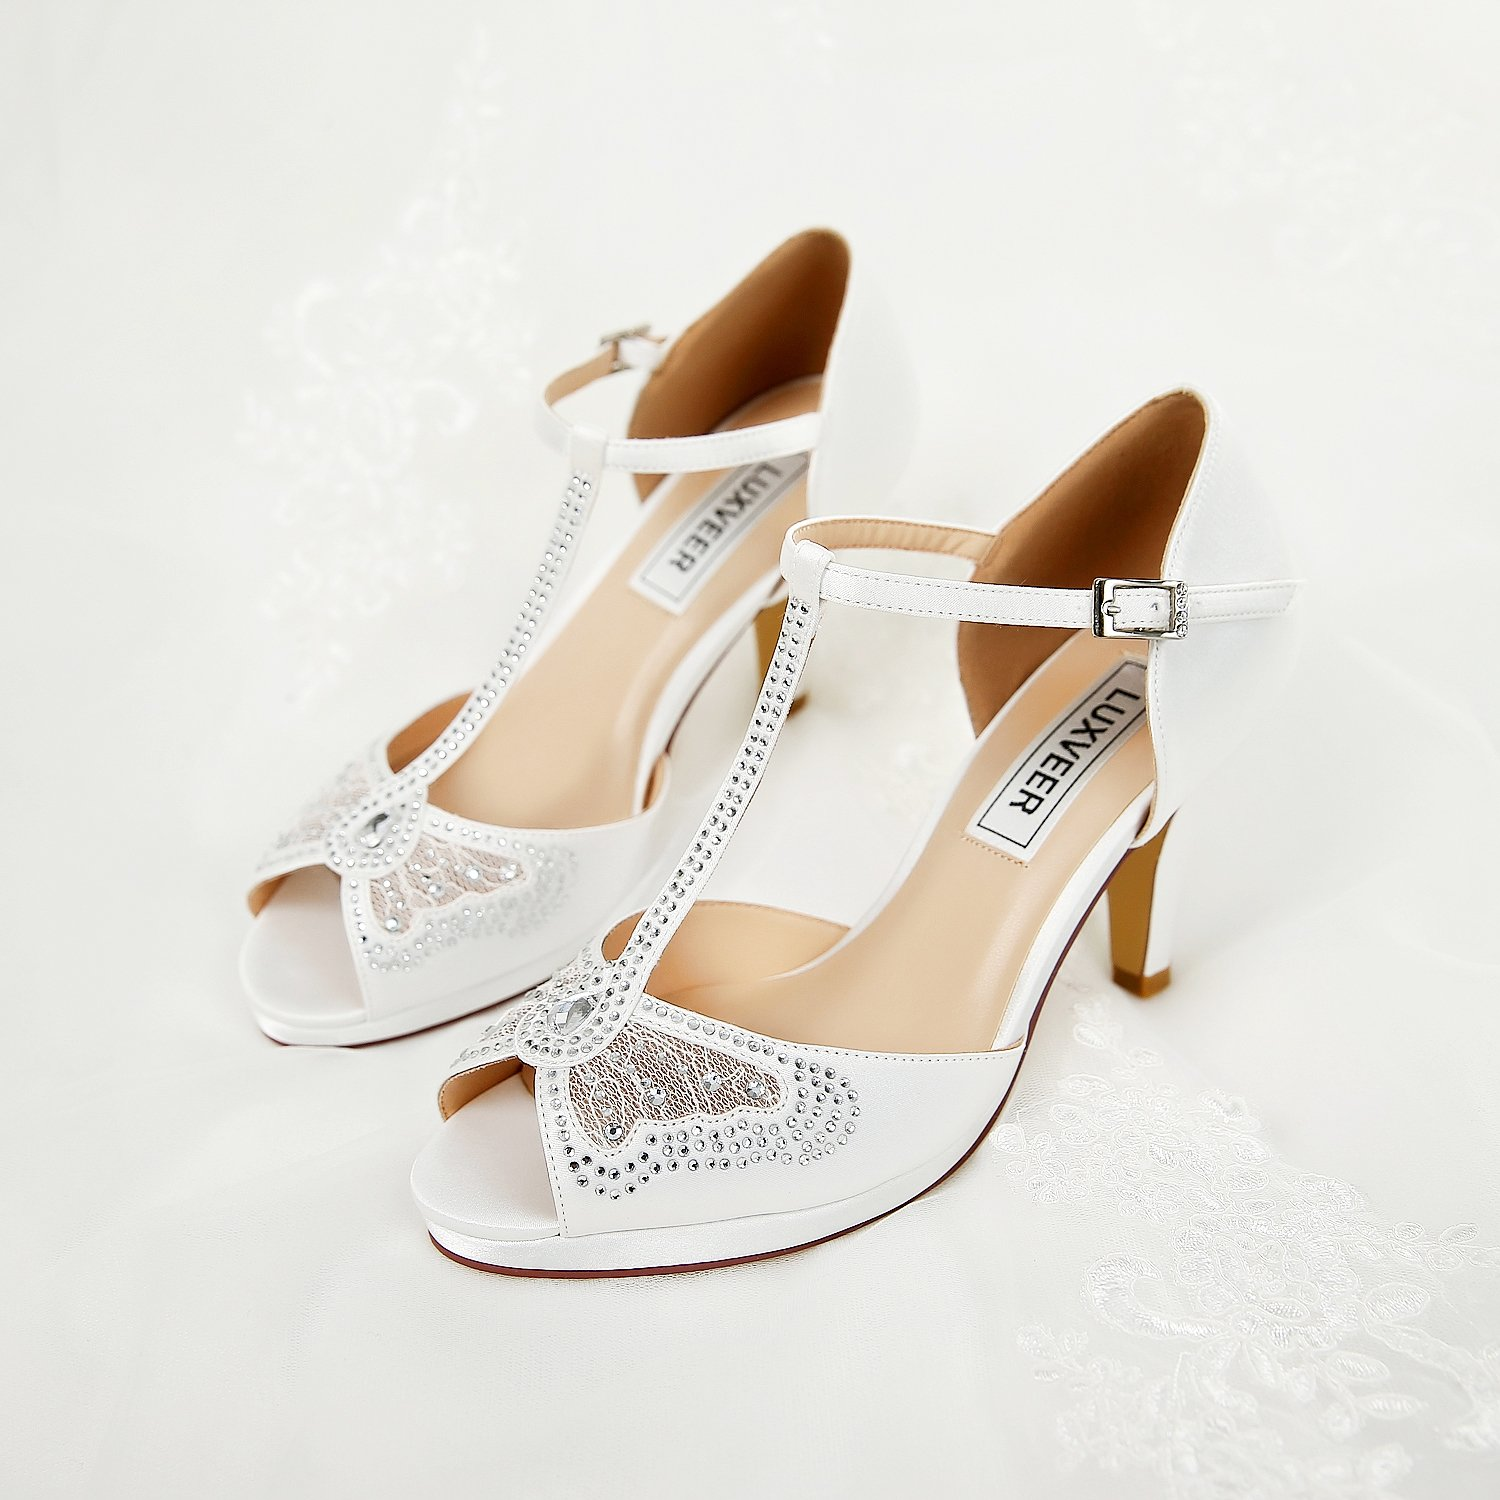 LUXVEER Wedding Sandals Heels for Women ,Silver Rhinestone and Lace Butterfly - Heels 3.5 inch-HK-0192C-Ivory-EU40 Wedding Shoes by LUXVEER (Image #7)